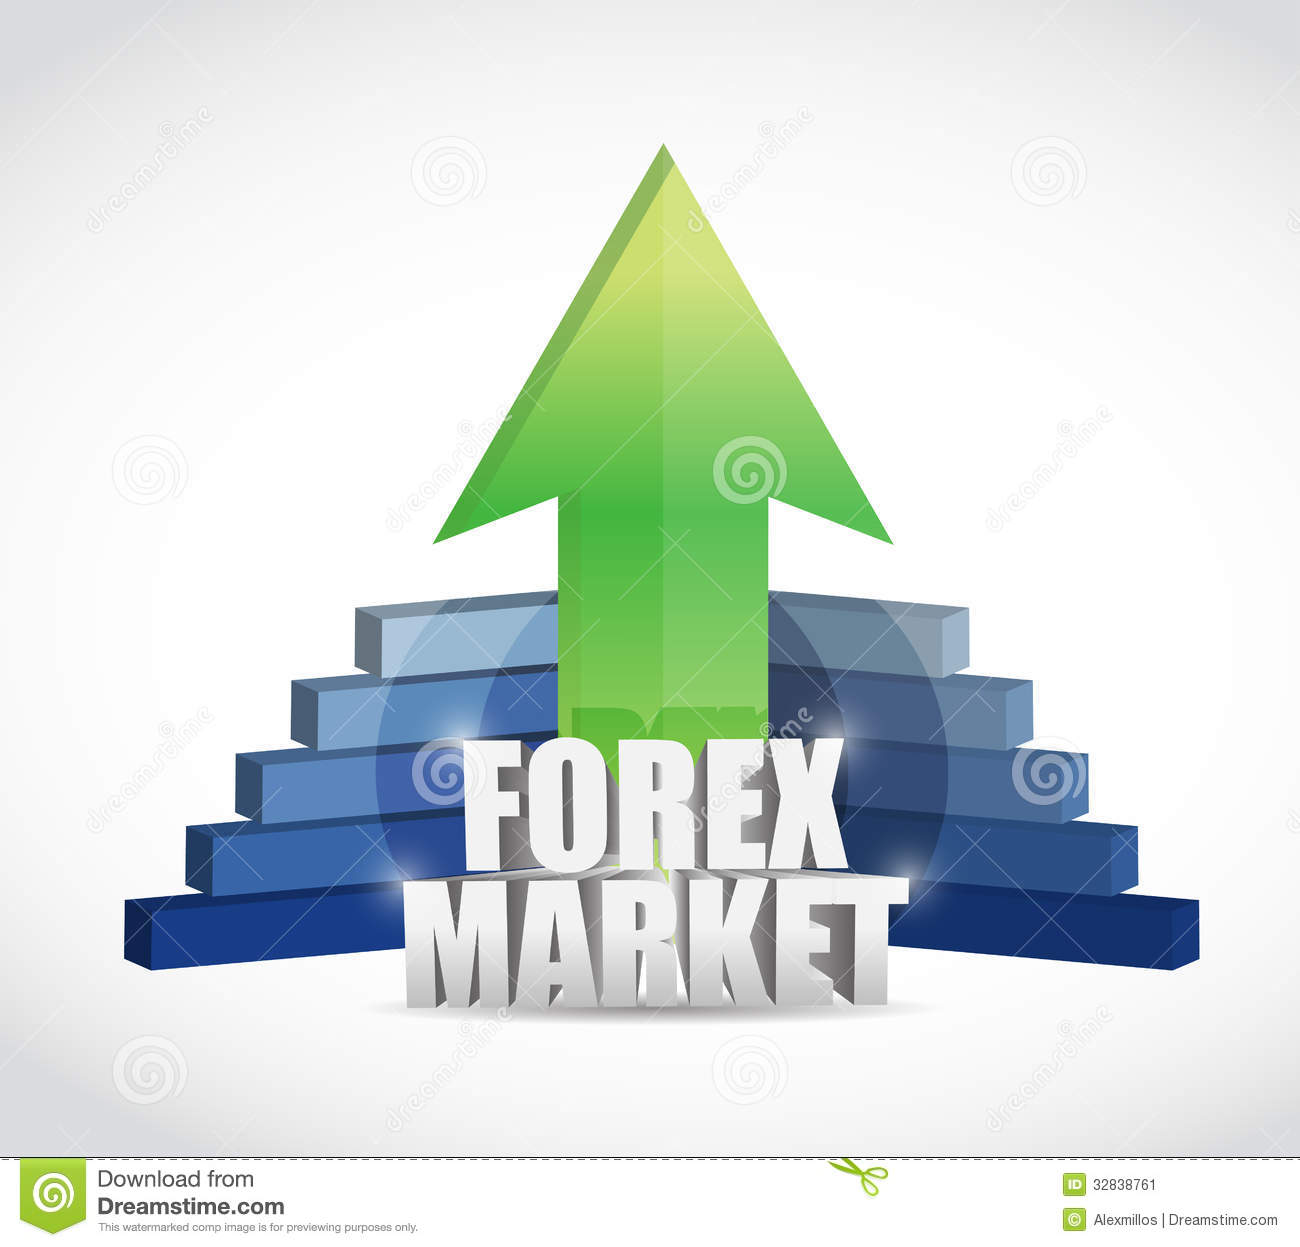 Easy forex phone number